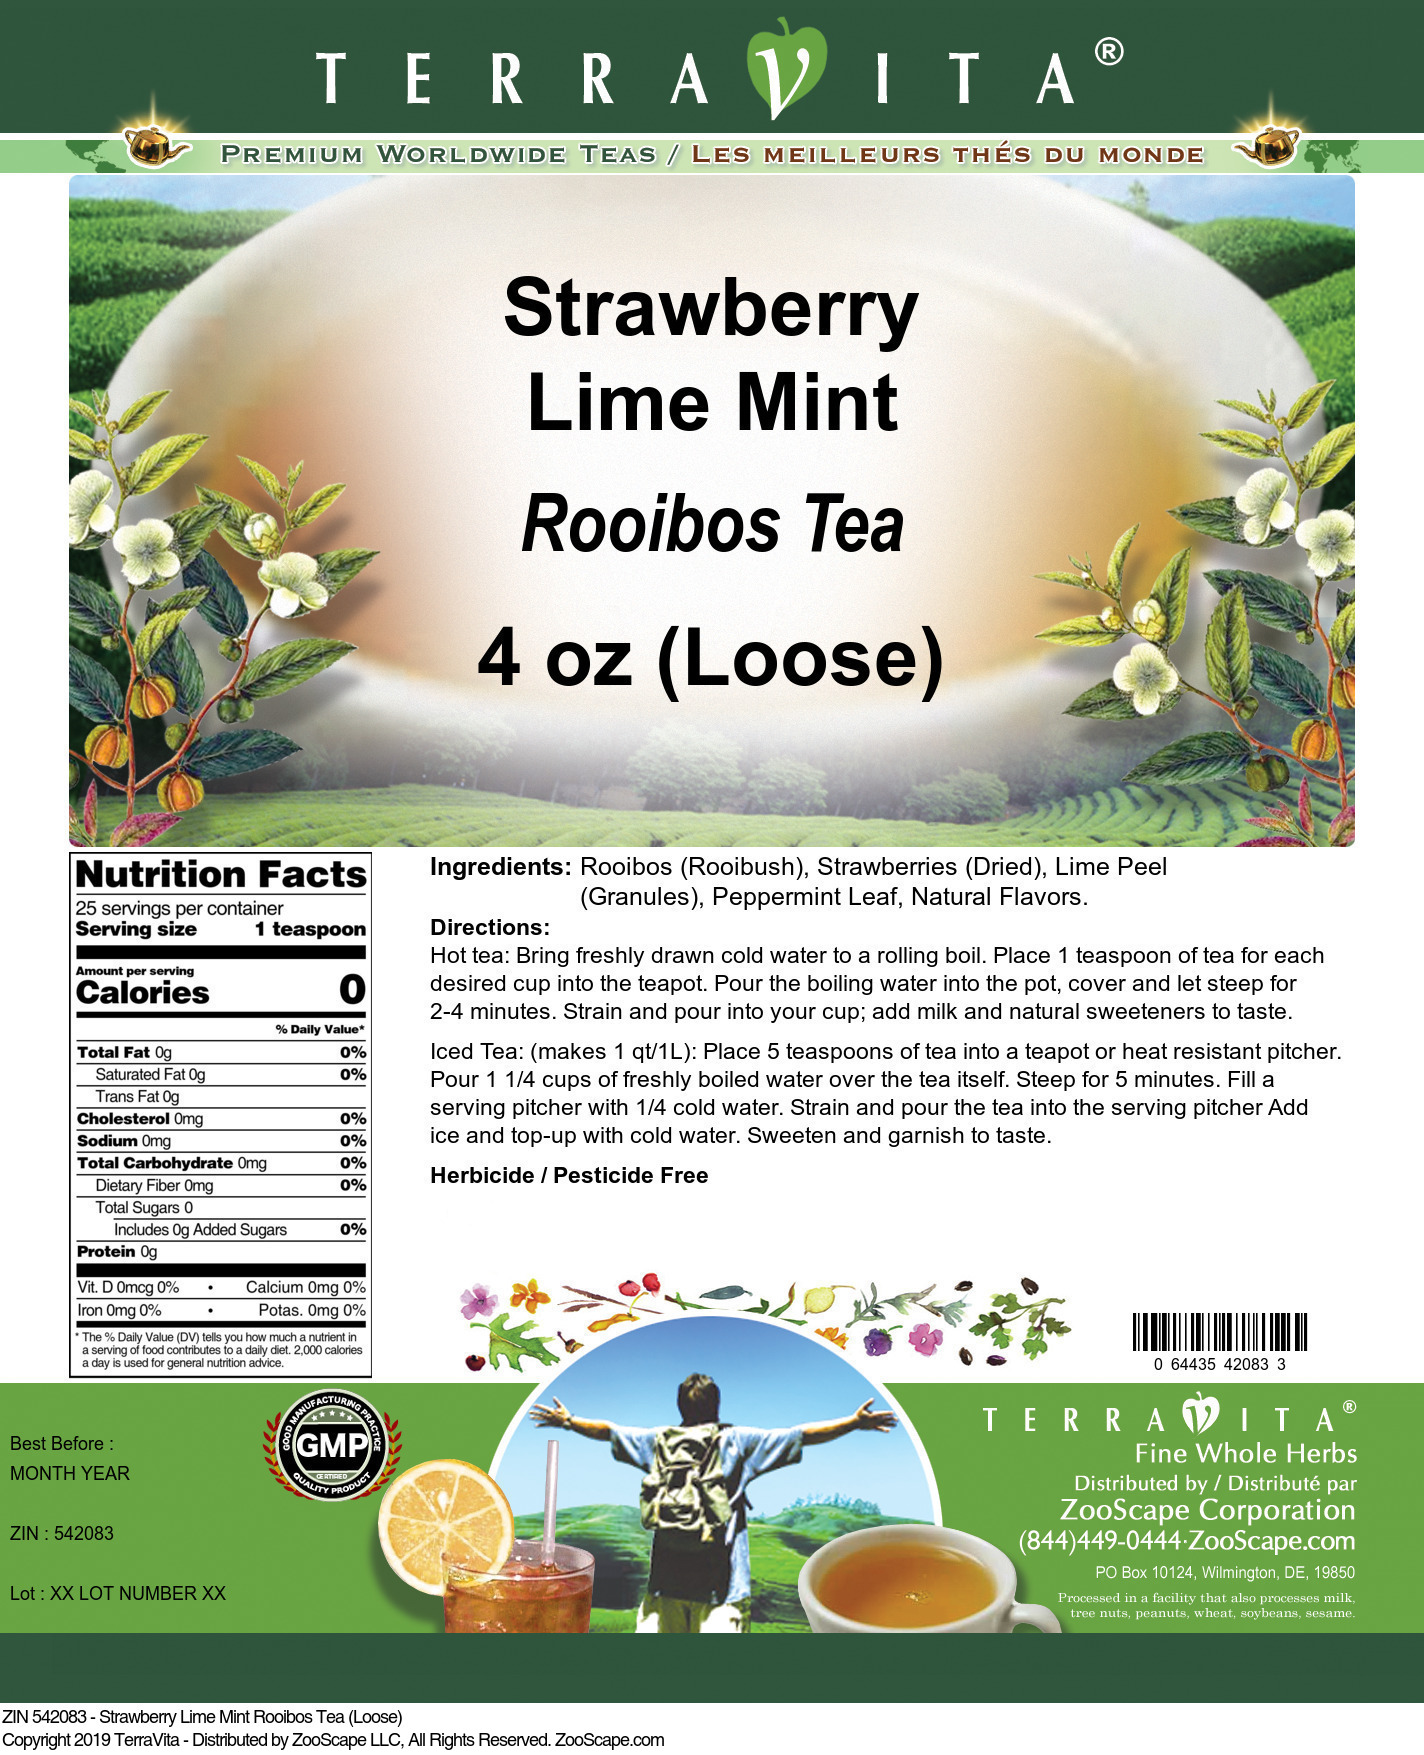 Strawberry Lime Mint Rooibos Tea (Loose)